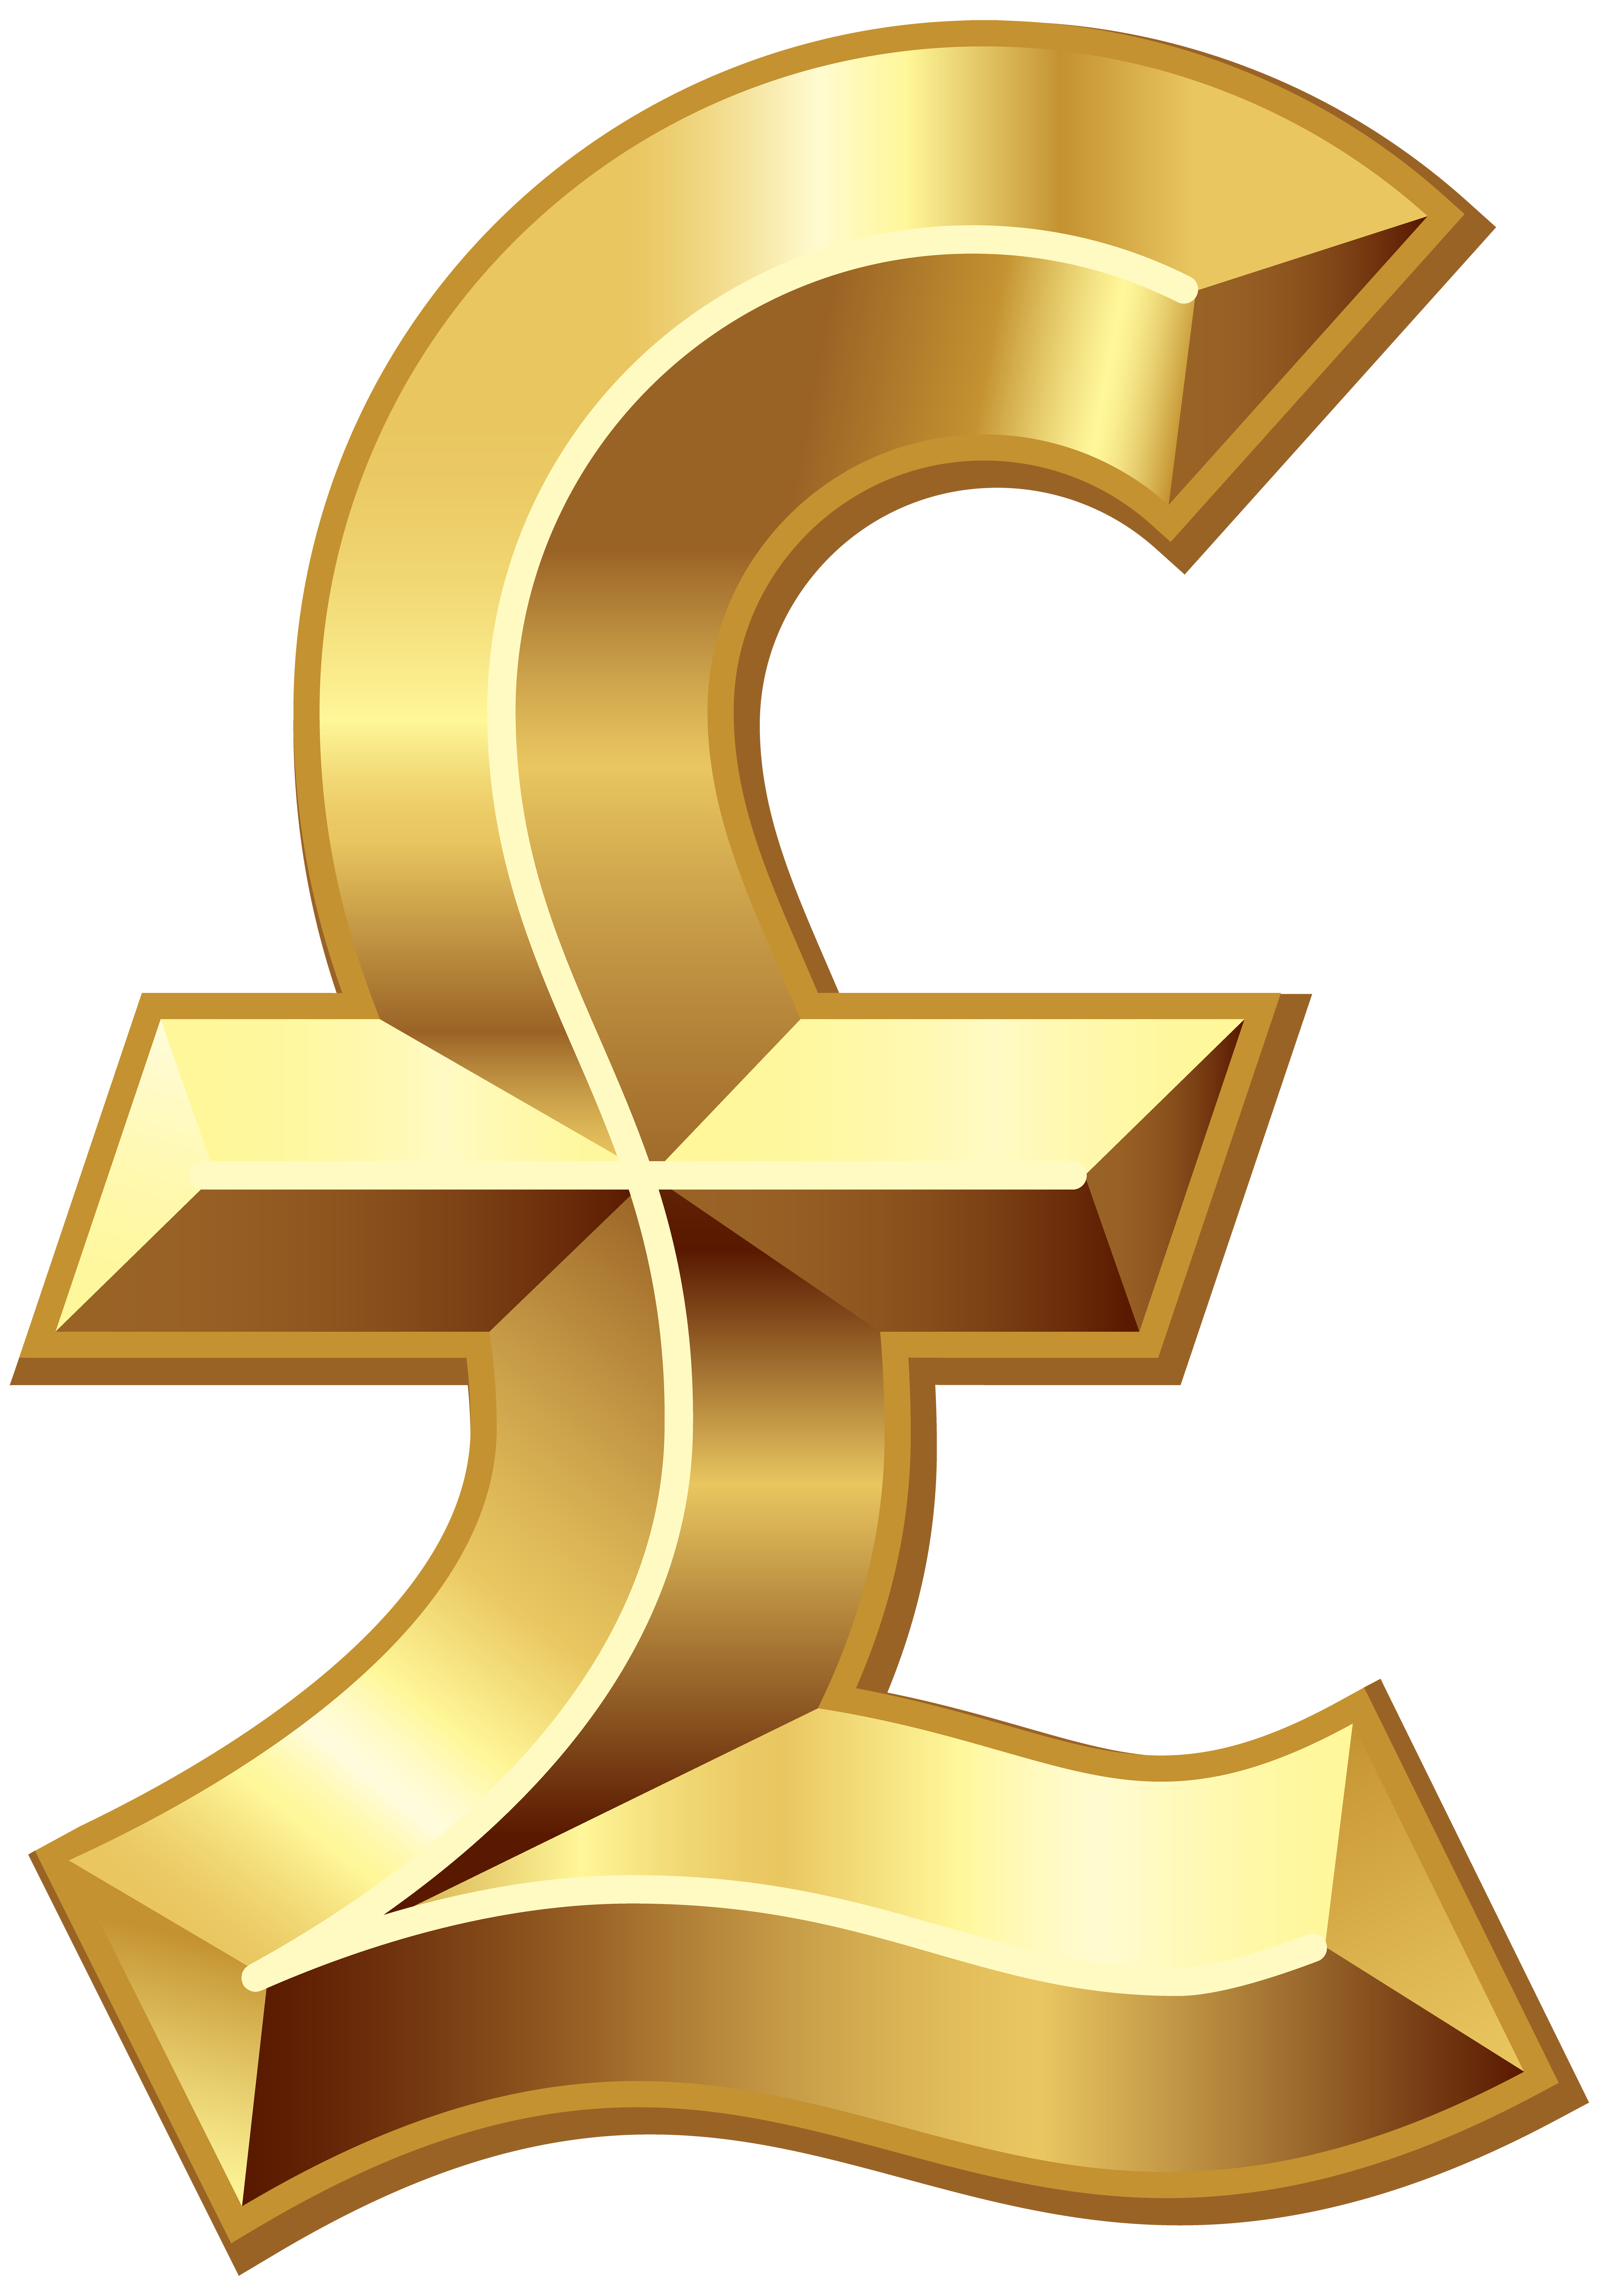 Dollar clipart pound. Sterling sign currency symbol